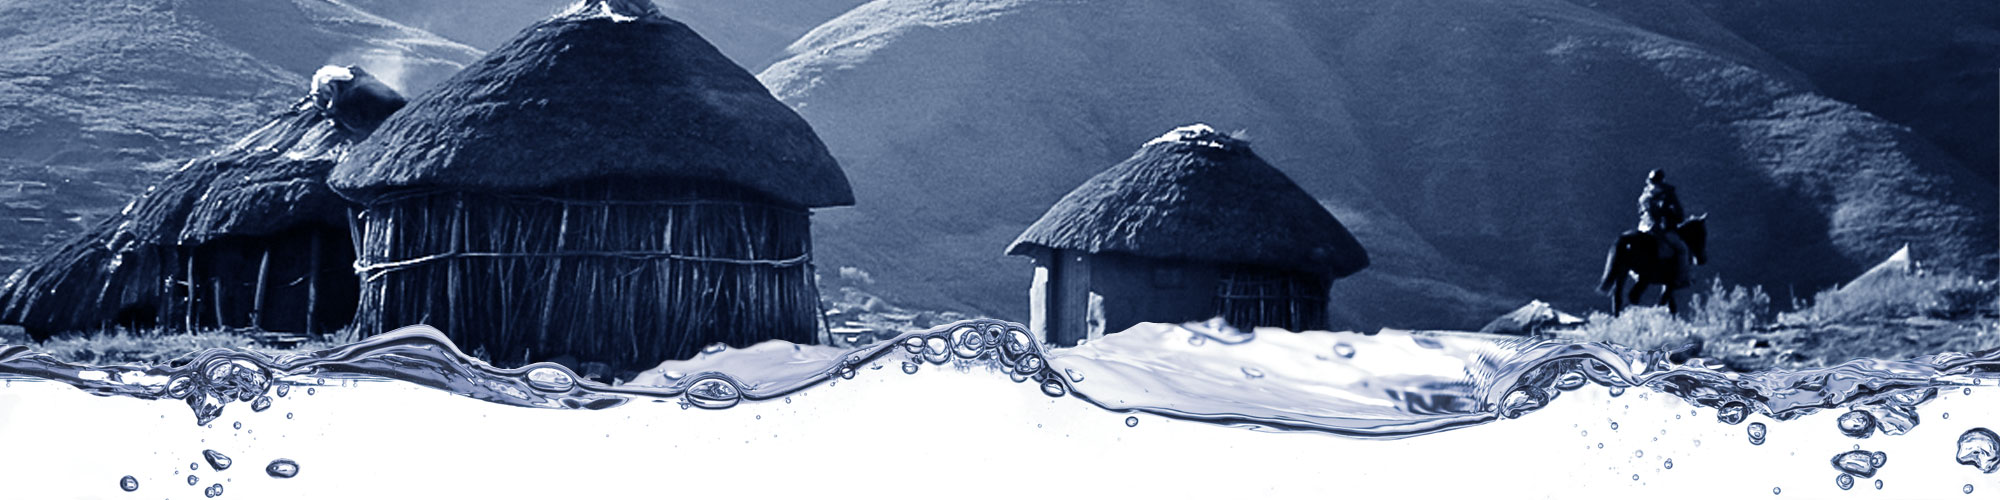 AFRICA-lesotho-huts-laundry-catering